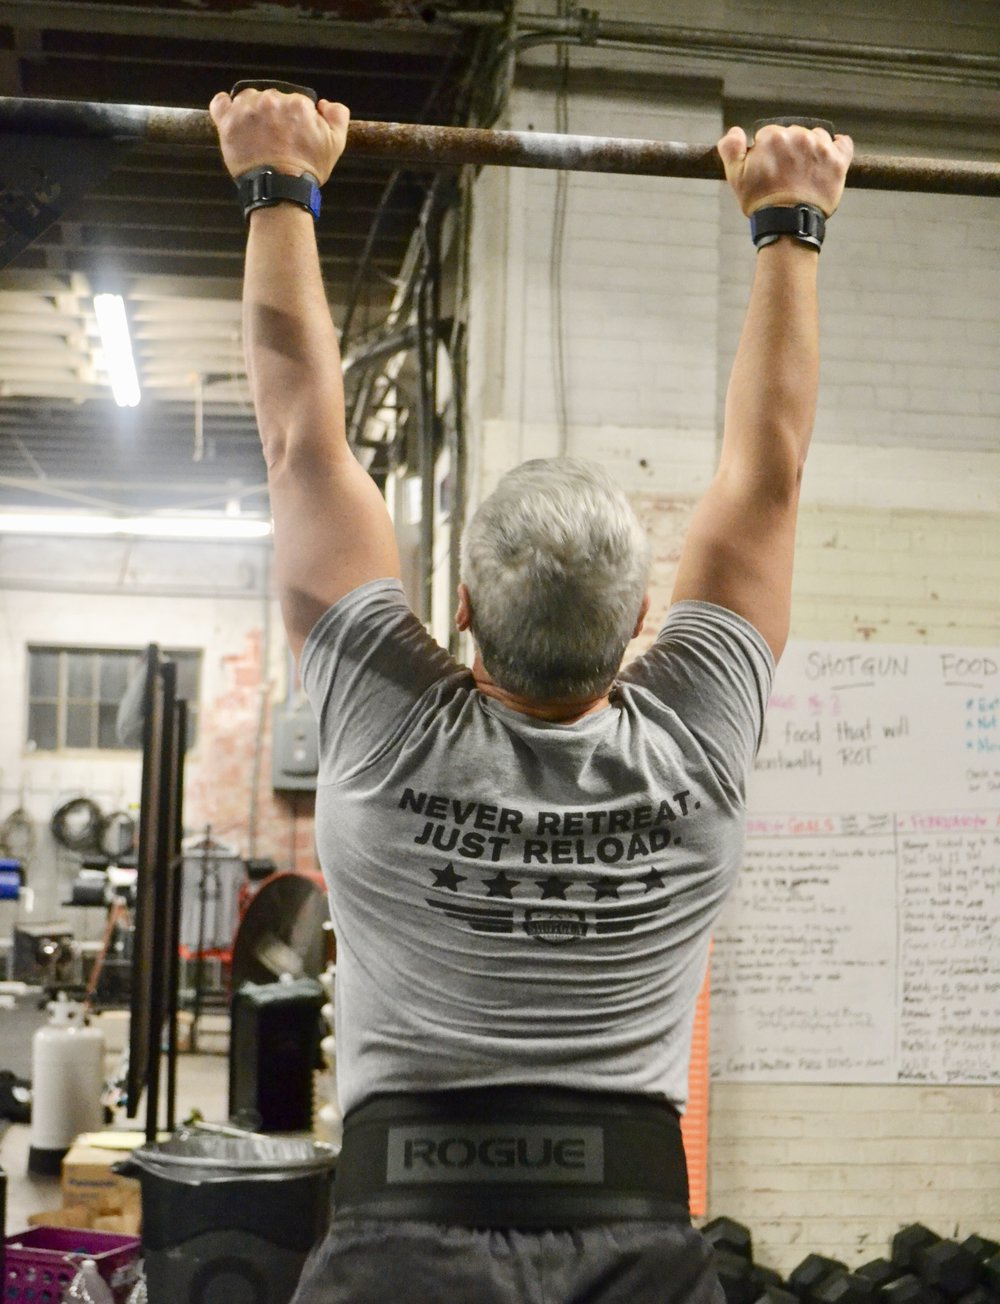 Tom N.  Skill: Muscle-Up and Handstand walk practice 6 min AMRAP: 1-4 Muscle Ups -then- 6 min : 30 sec. HS walk 30 rest.  *Scaled:  Work on what you need to work on during this time. Bar MU, C2B, pull-ups, Ring rows. Kicking Up to a HS.  Weight transfers in a HS.  WOD: EMOM 20 minutes of:  10 Burpees  Score:  Slowest and fastest times. Rx:  10 burpees all 20 rounds.  Sc: Reduce reps as needed.  You want to build in around 20-30 sec. or more of rest per minute.